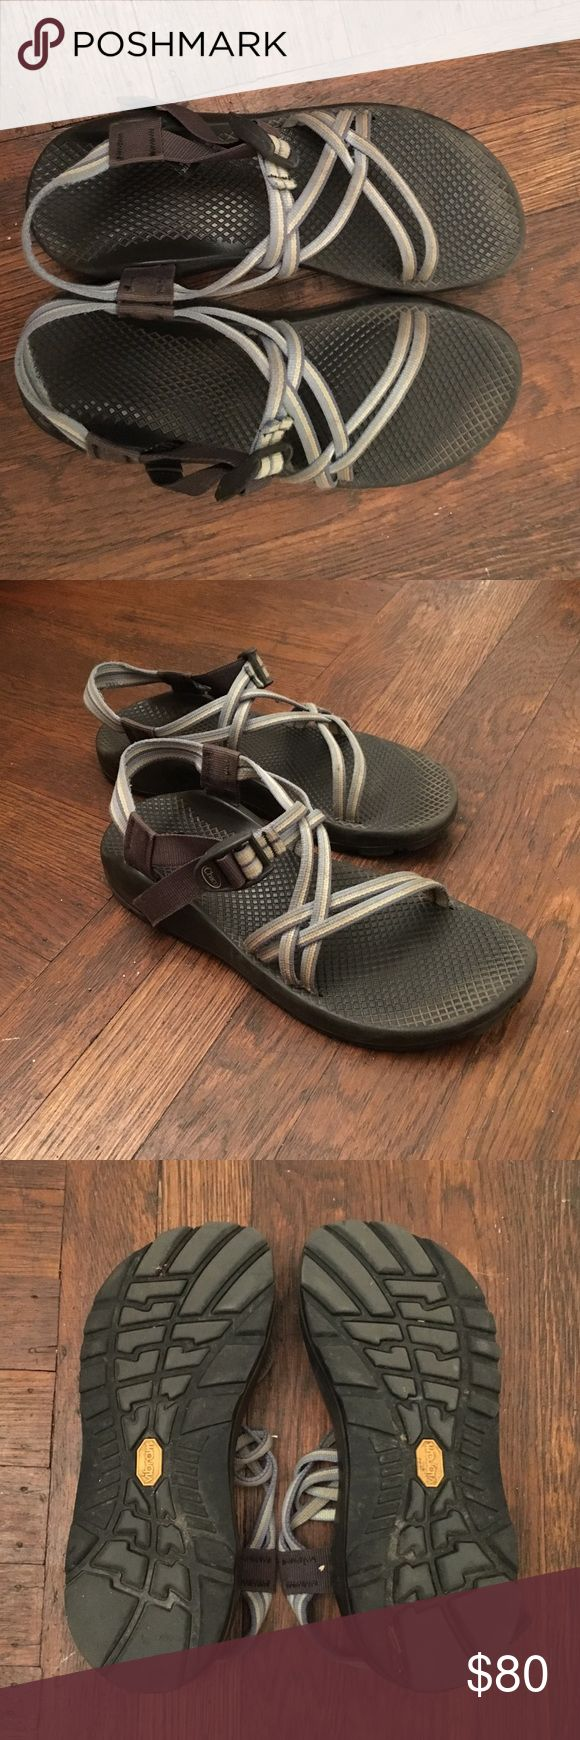 Women's Chaco sandal size 9 Used women's chacos size 9. Tred is still great. Straps are in good condition. Will trade for a size 8 pair of women's chacos. Chacos Shoes Sandals